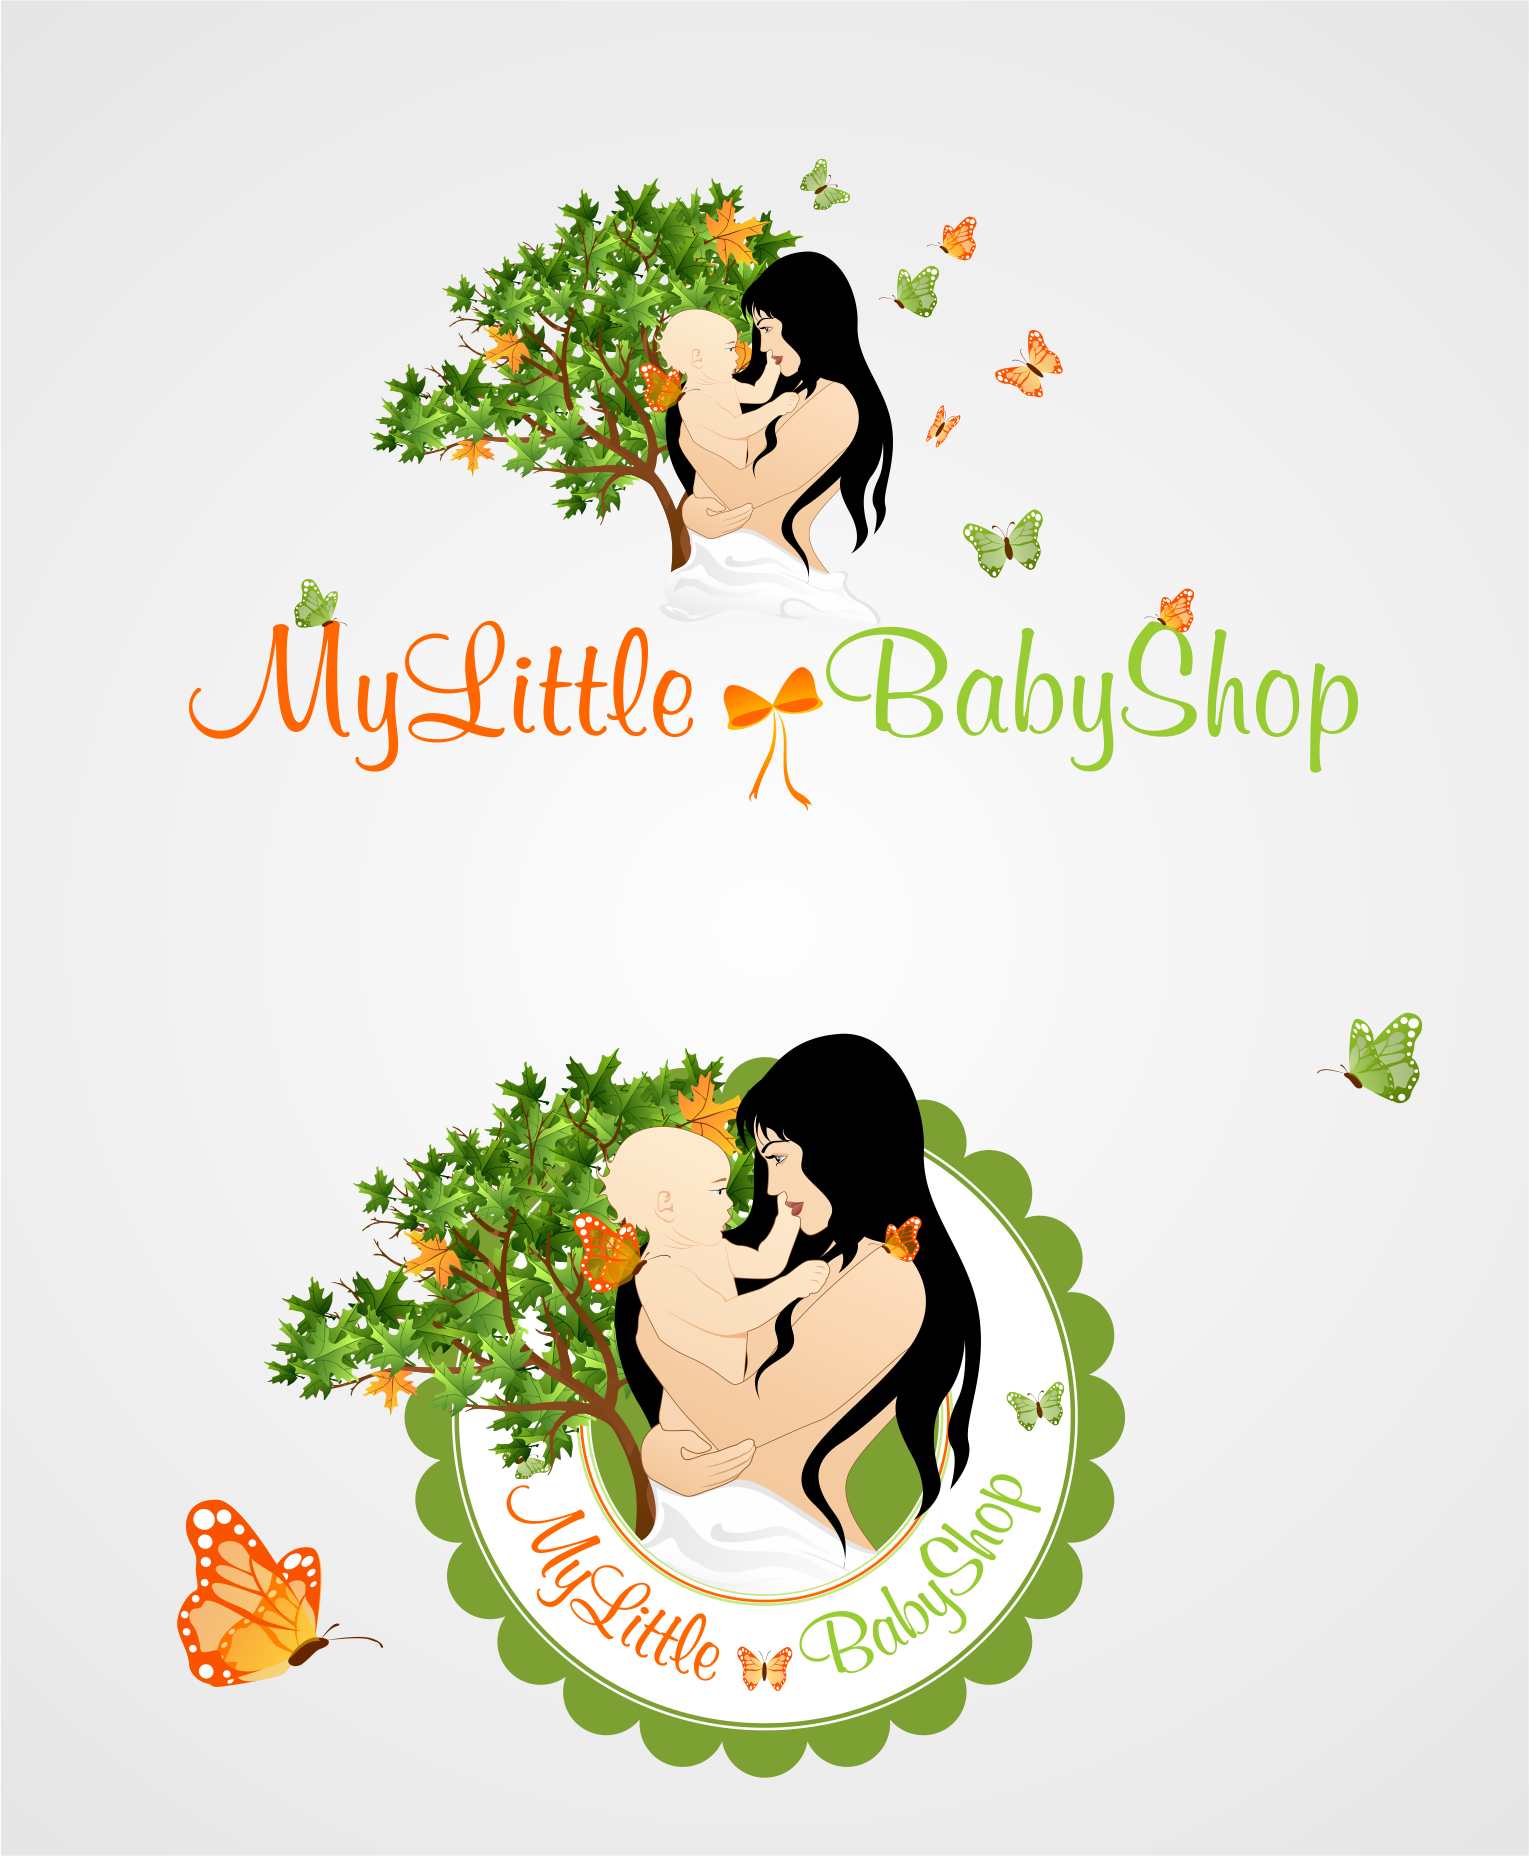 New logo wanted for MyLittleBabyShop